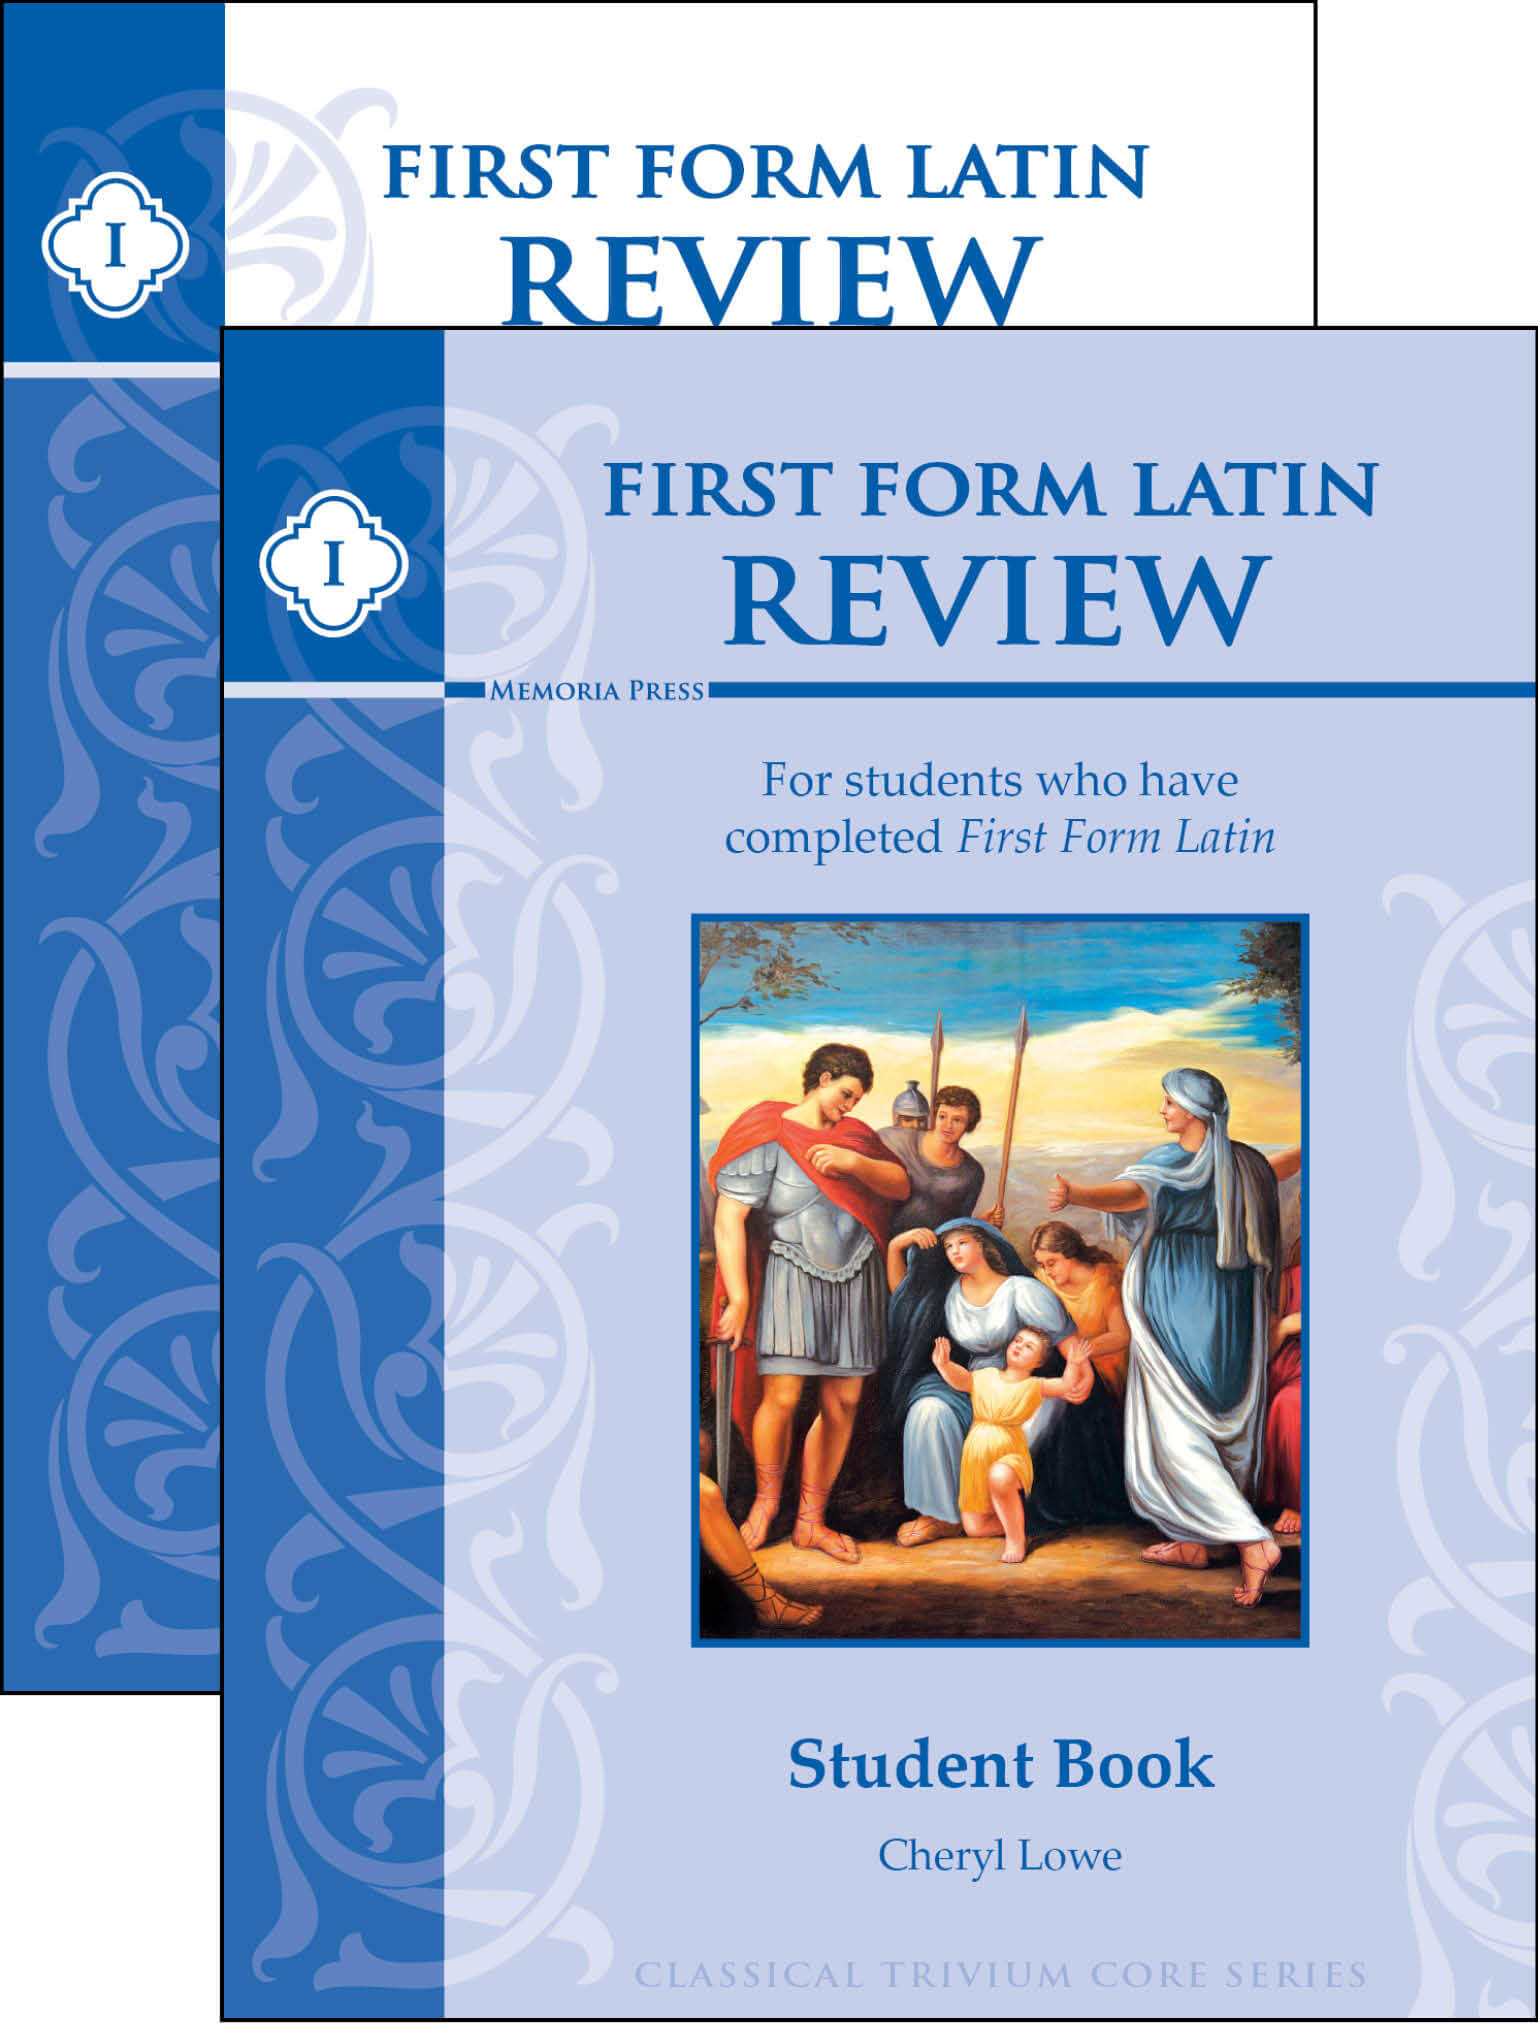 First Form Latin Review